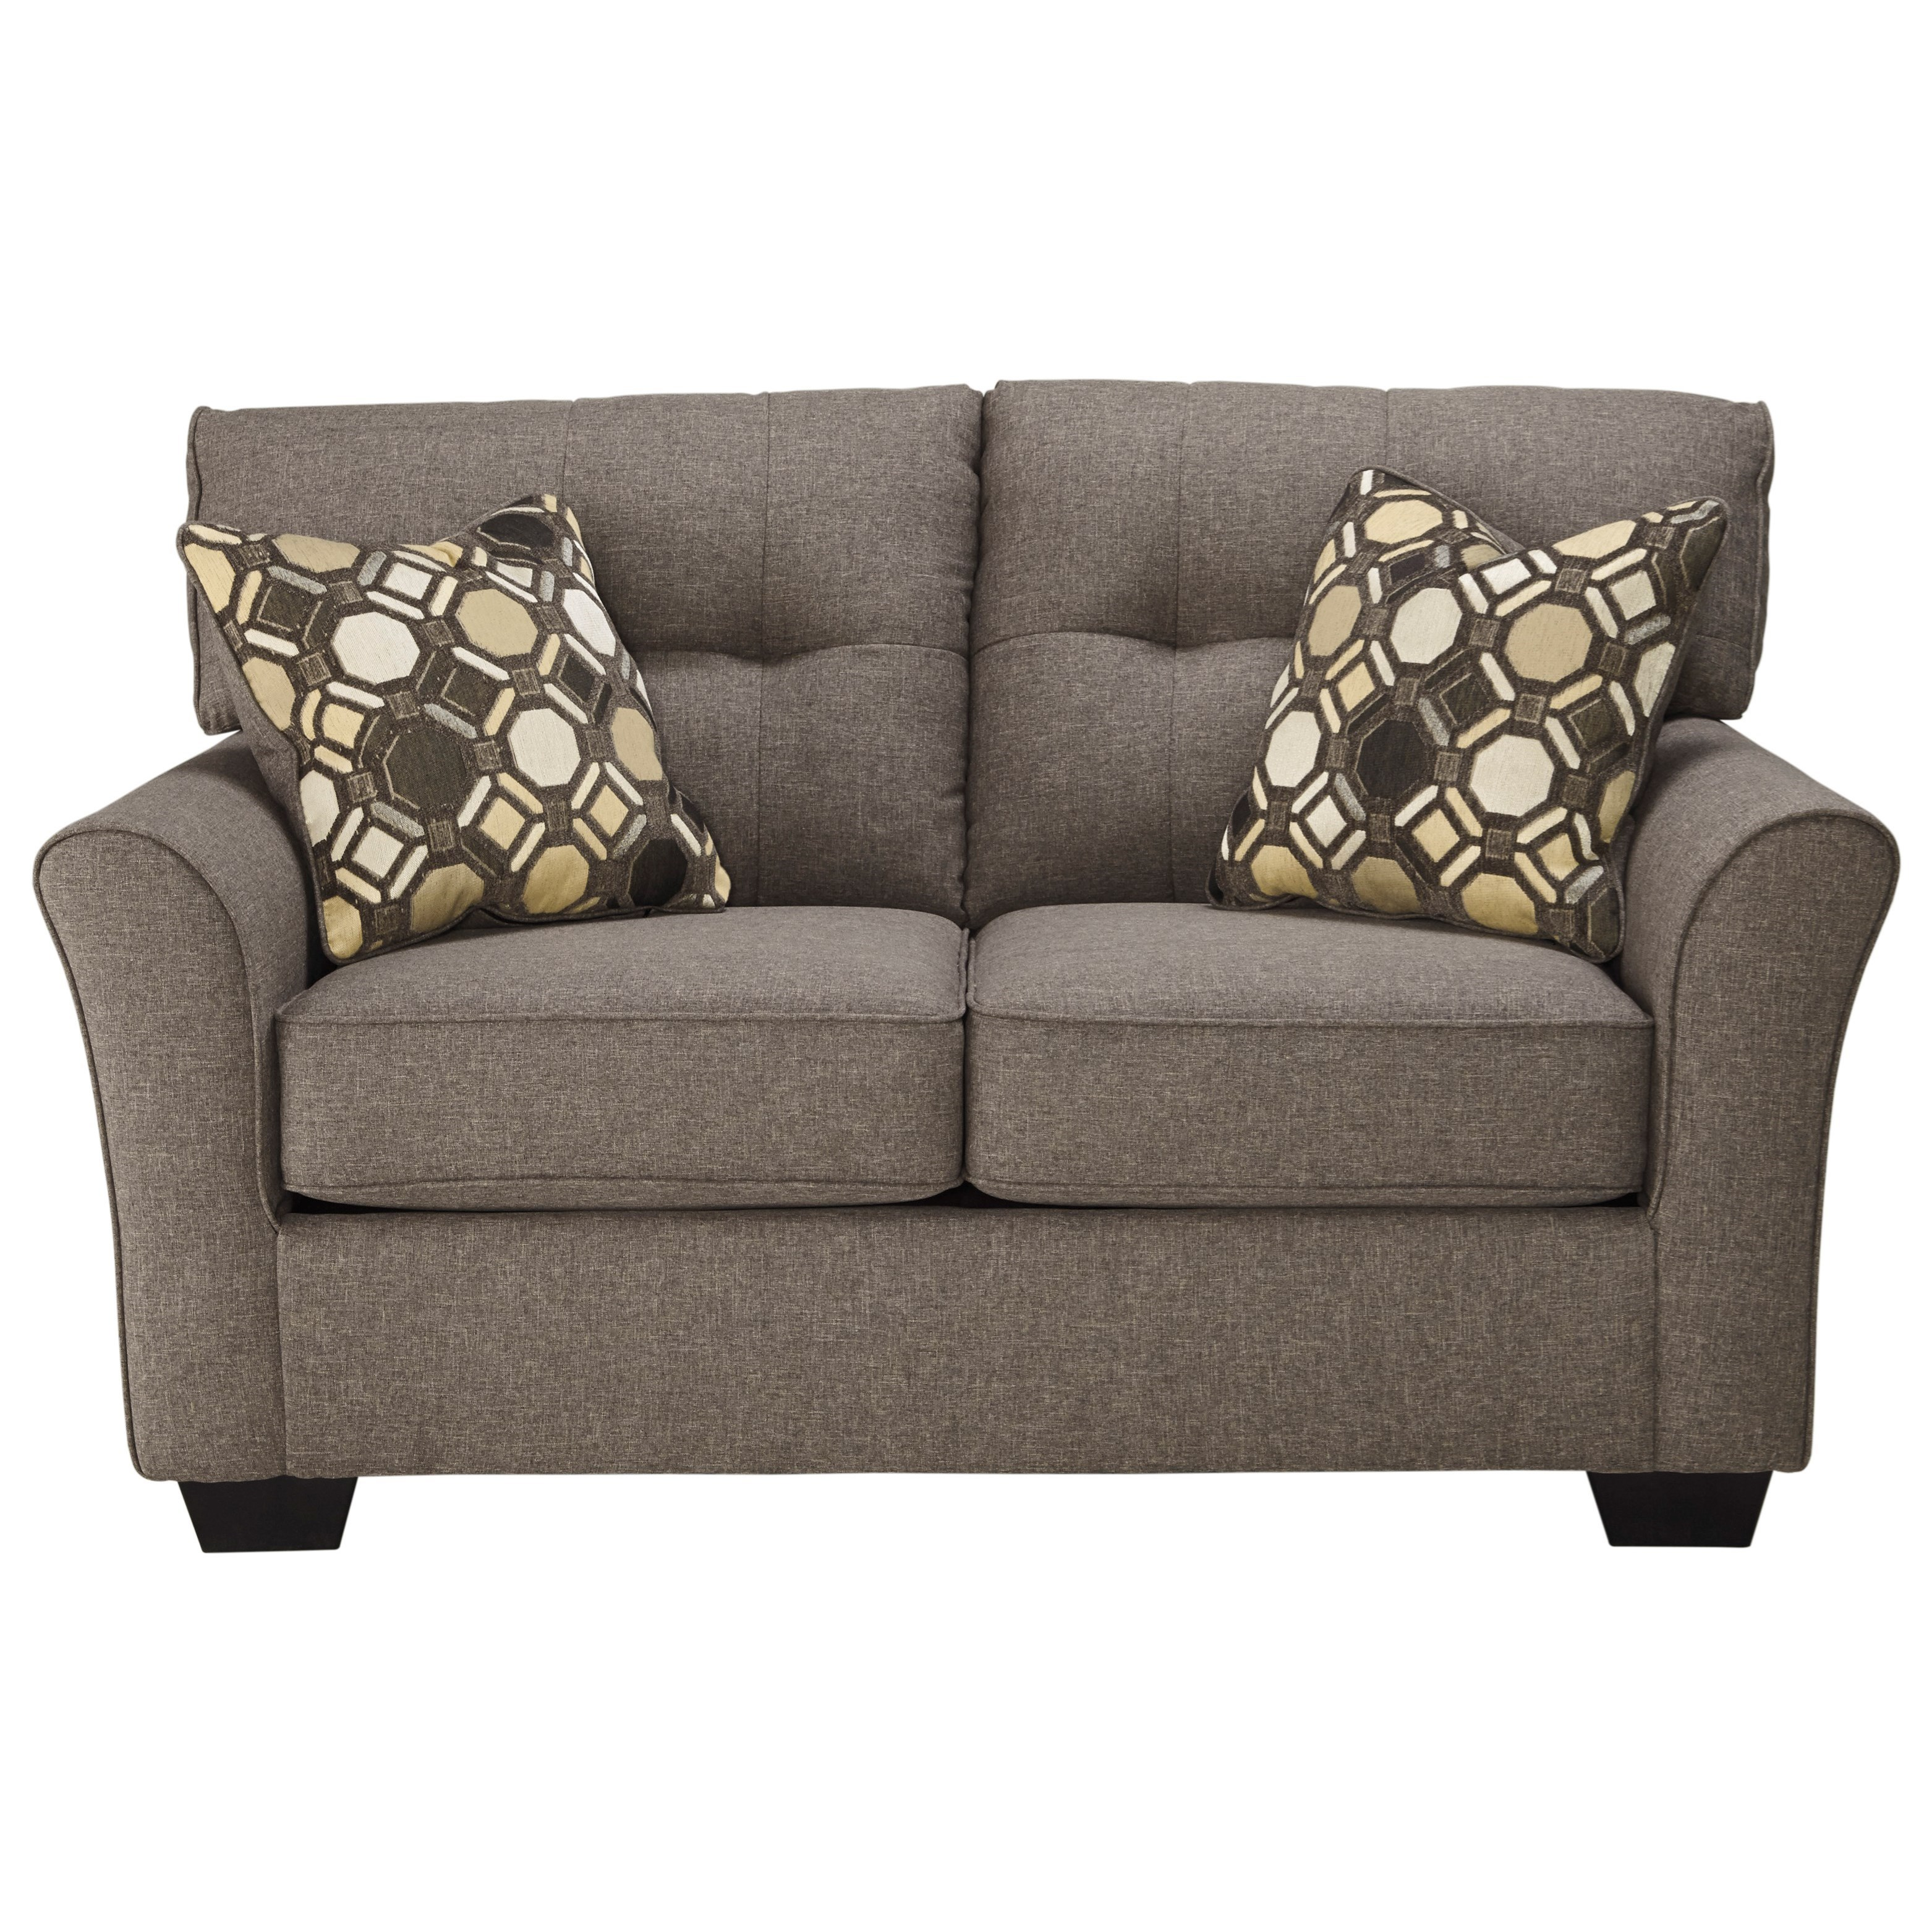 Contemporary Loveseat with Tufted Back